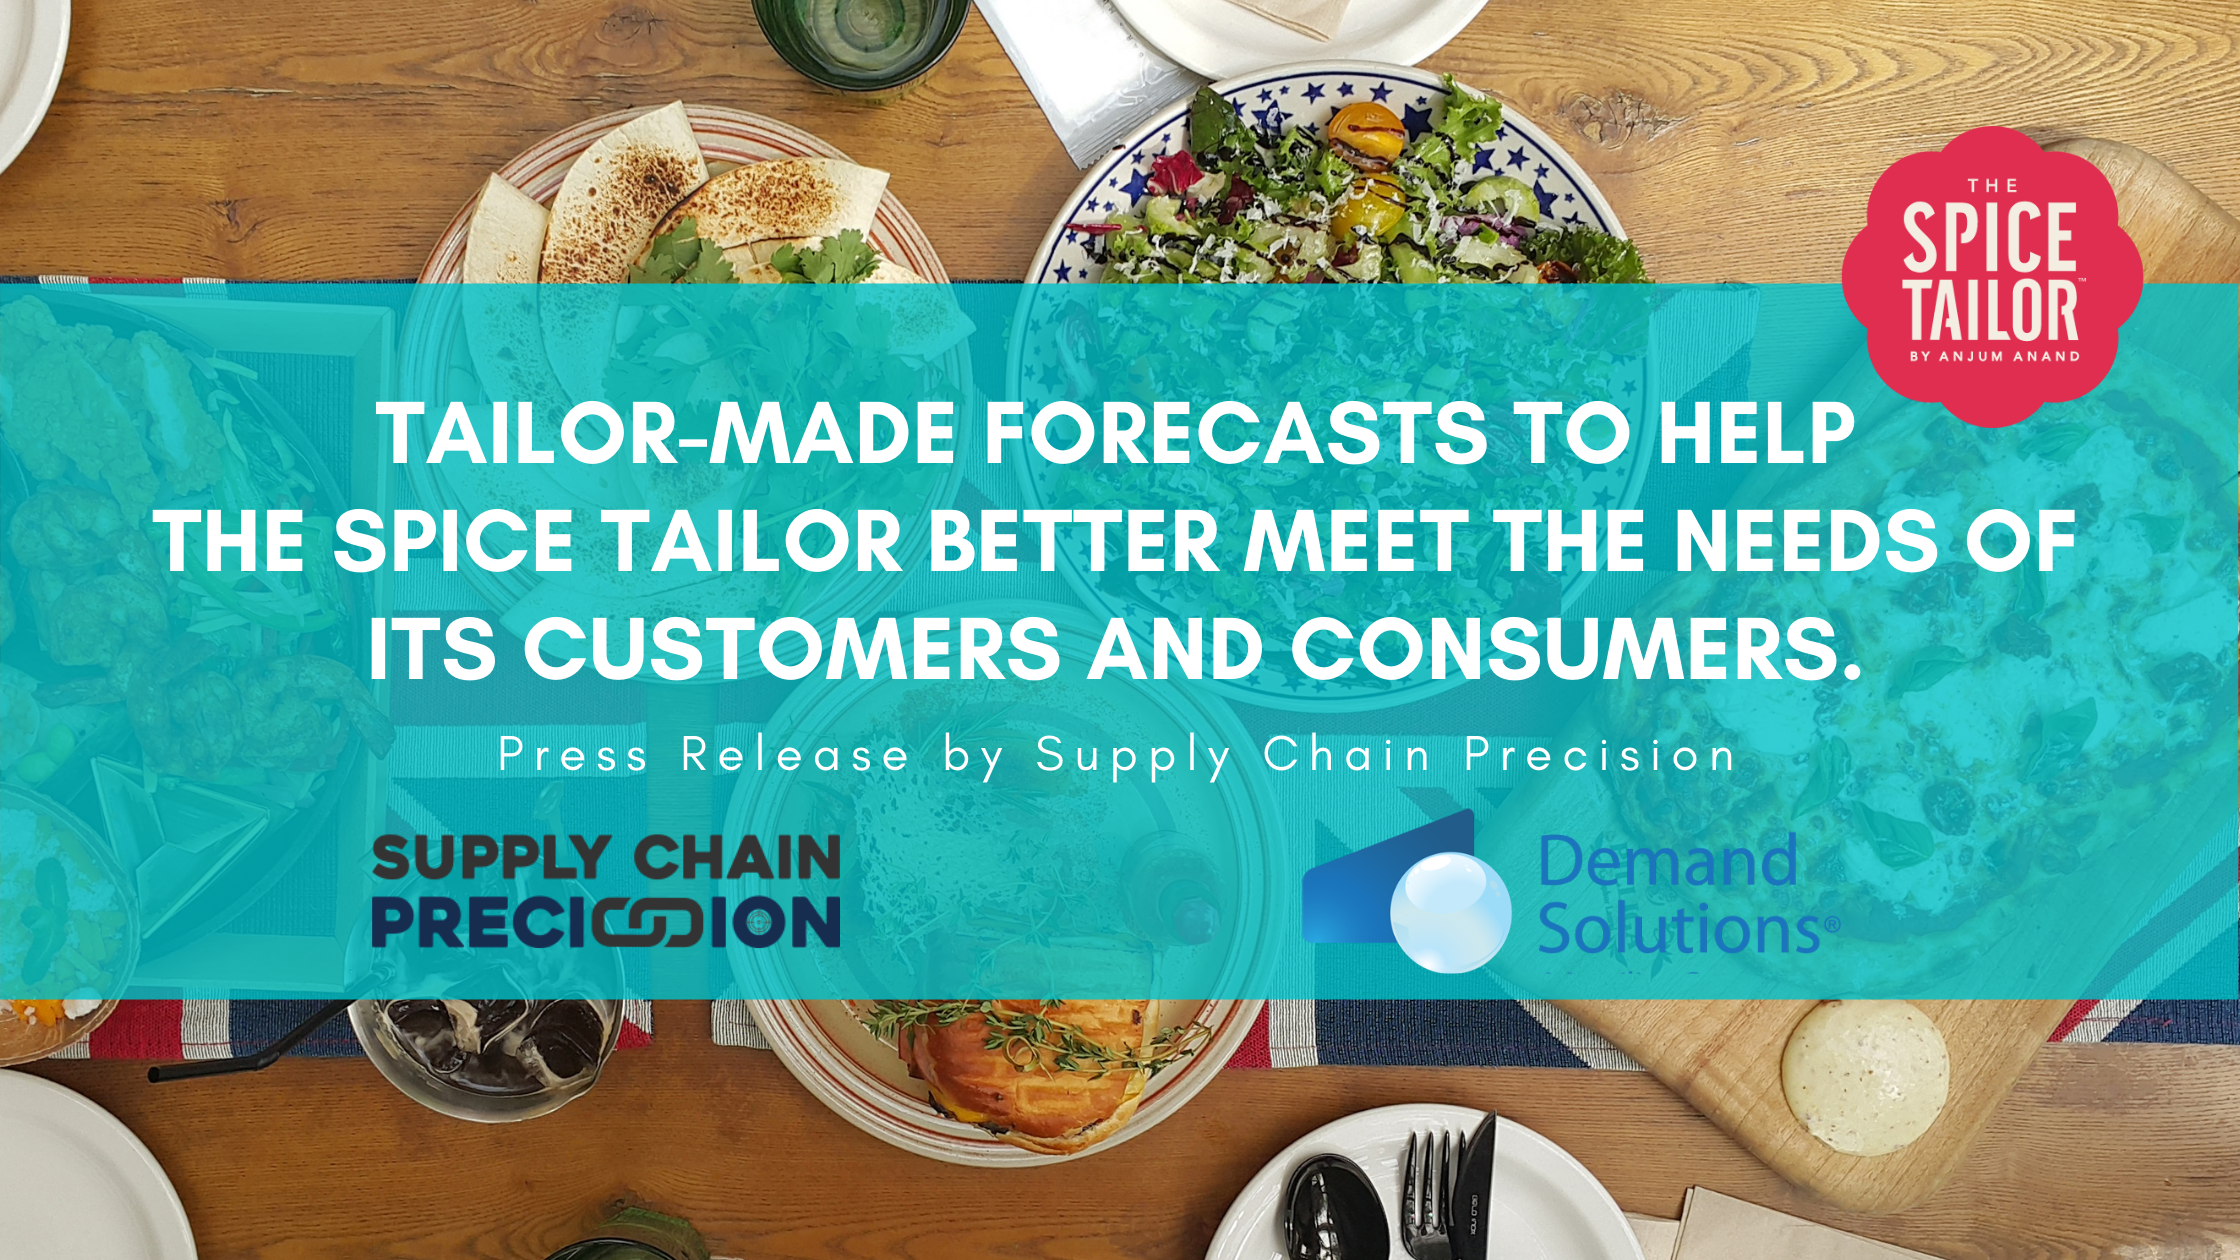 Tailor-made forecasts to help The Spice Tailor better meet the needs of its customers and consumers.